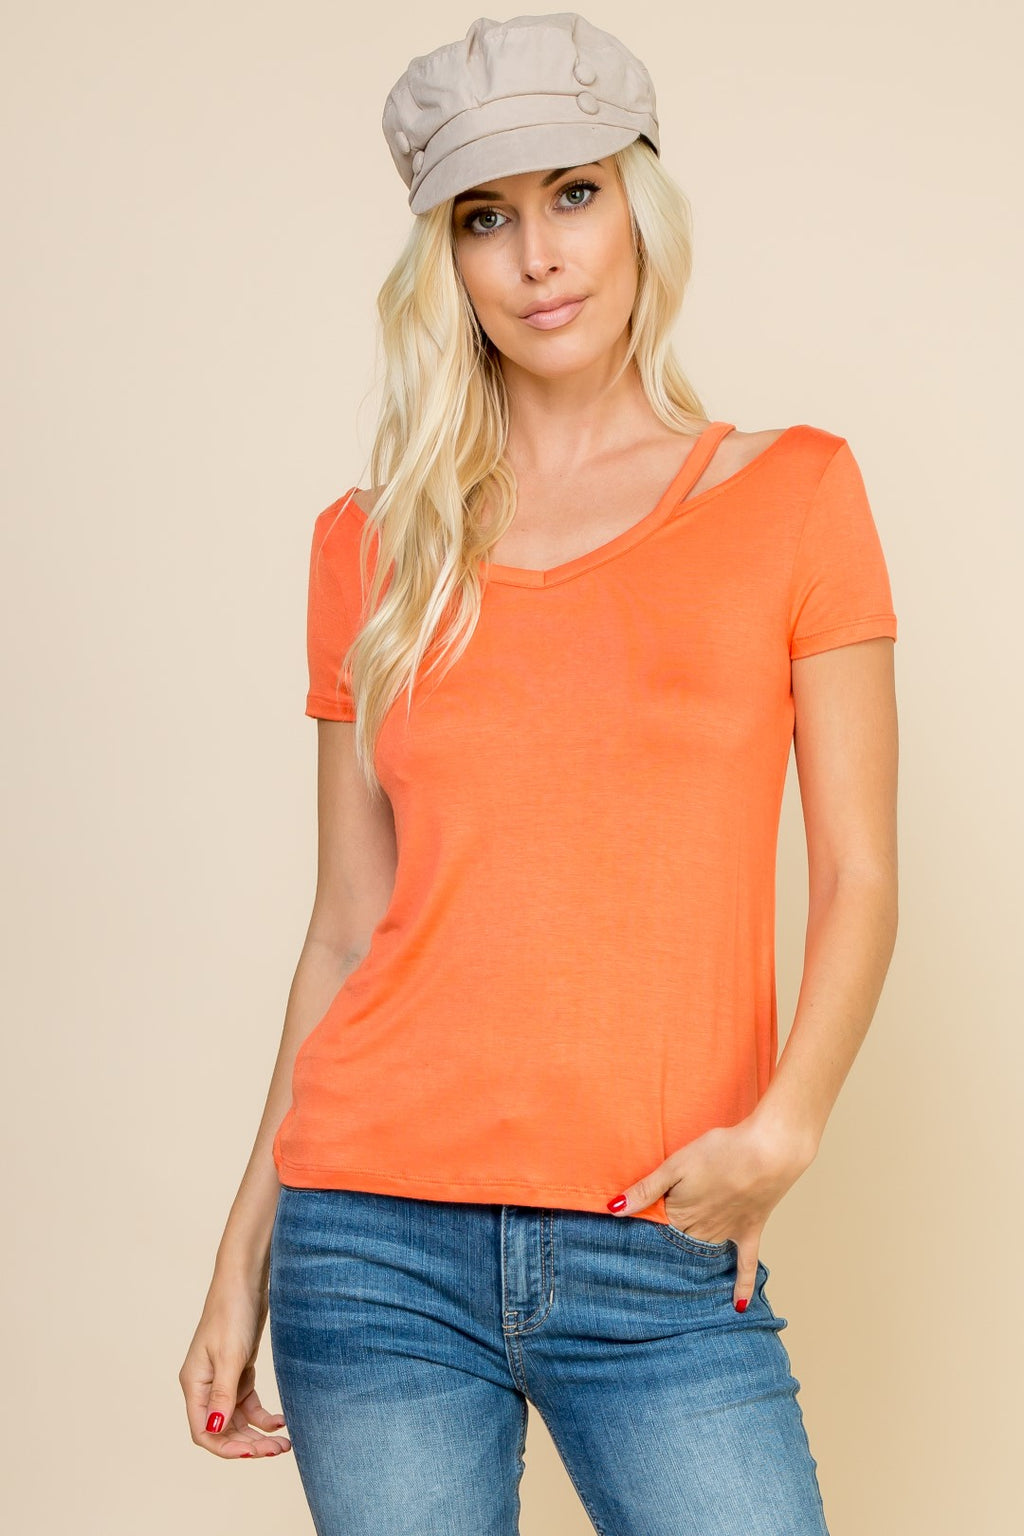 Orange Cut Out Tee